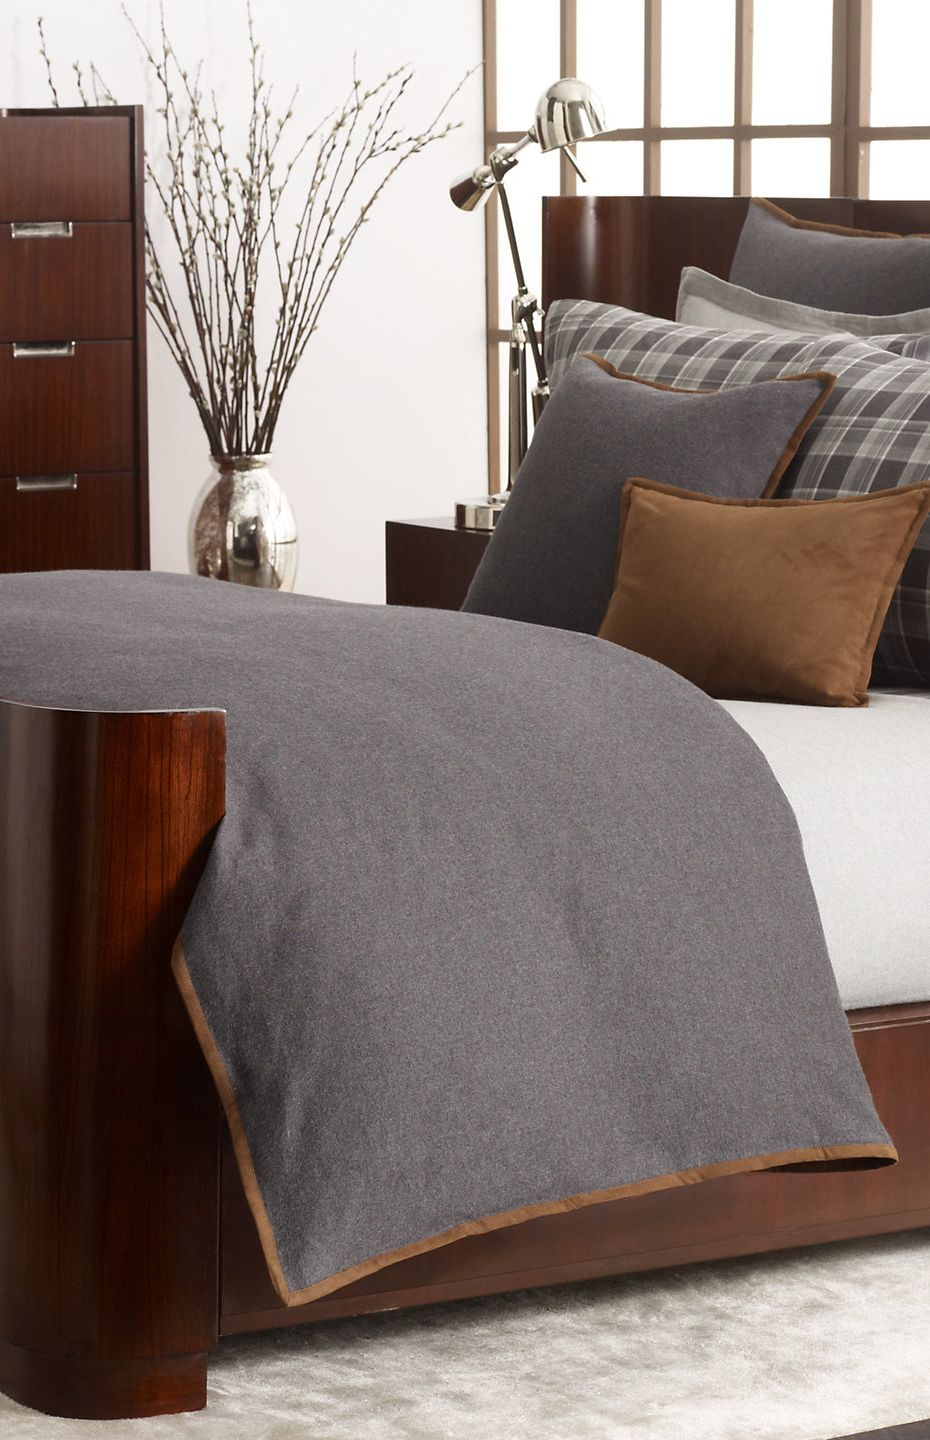 Bed And Bath Home Bedroom Bedroom Decor Home